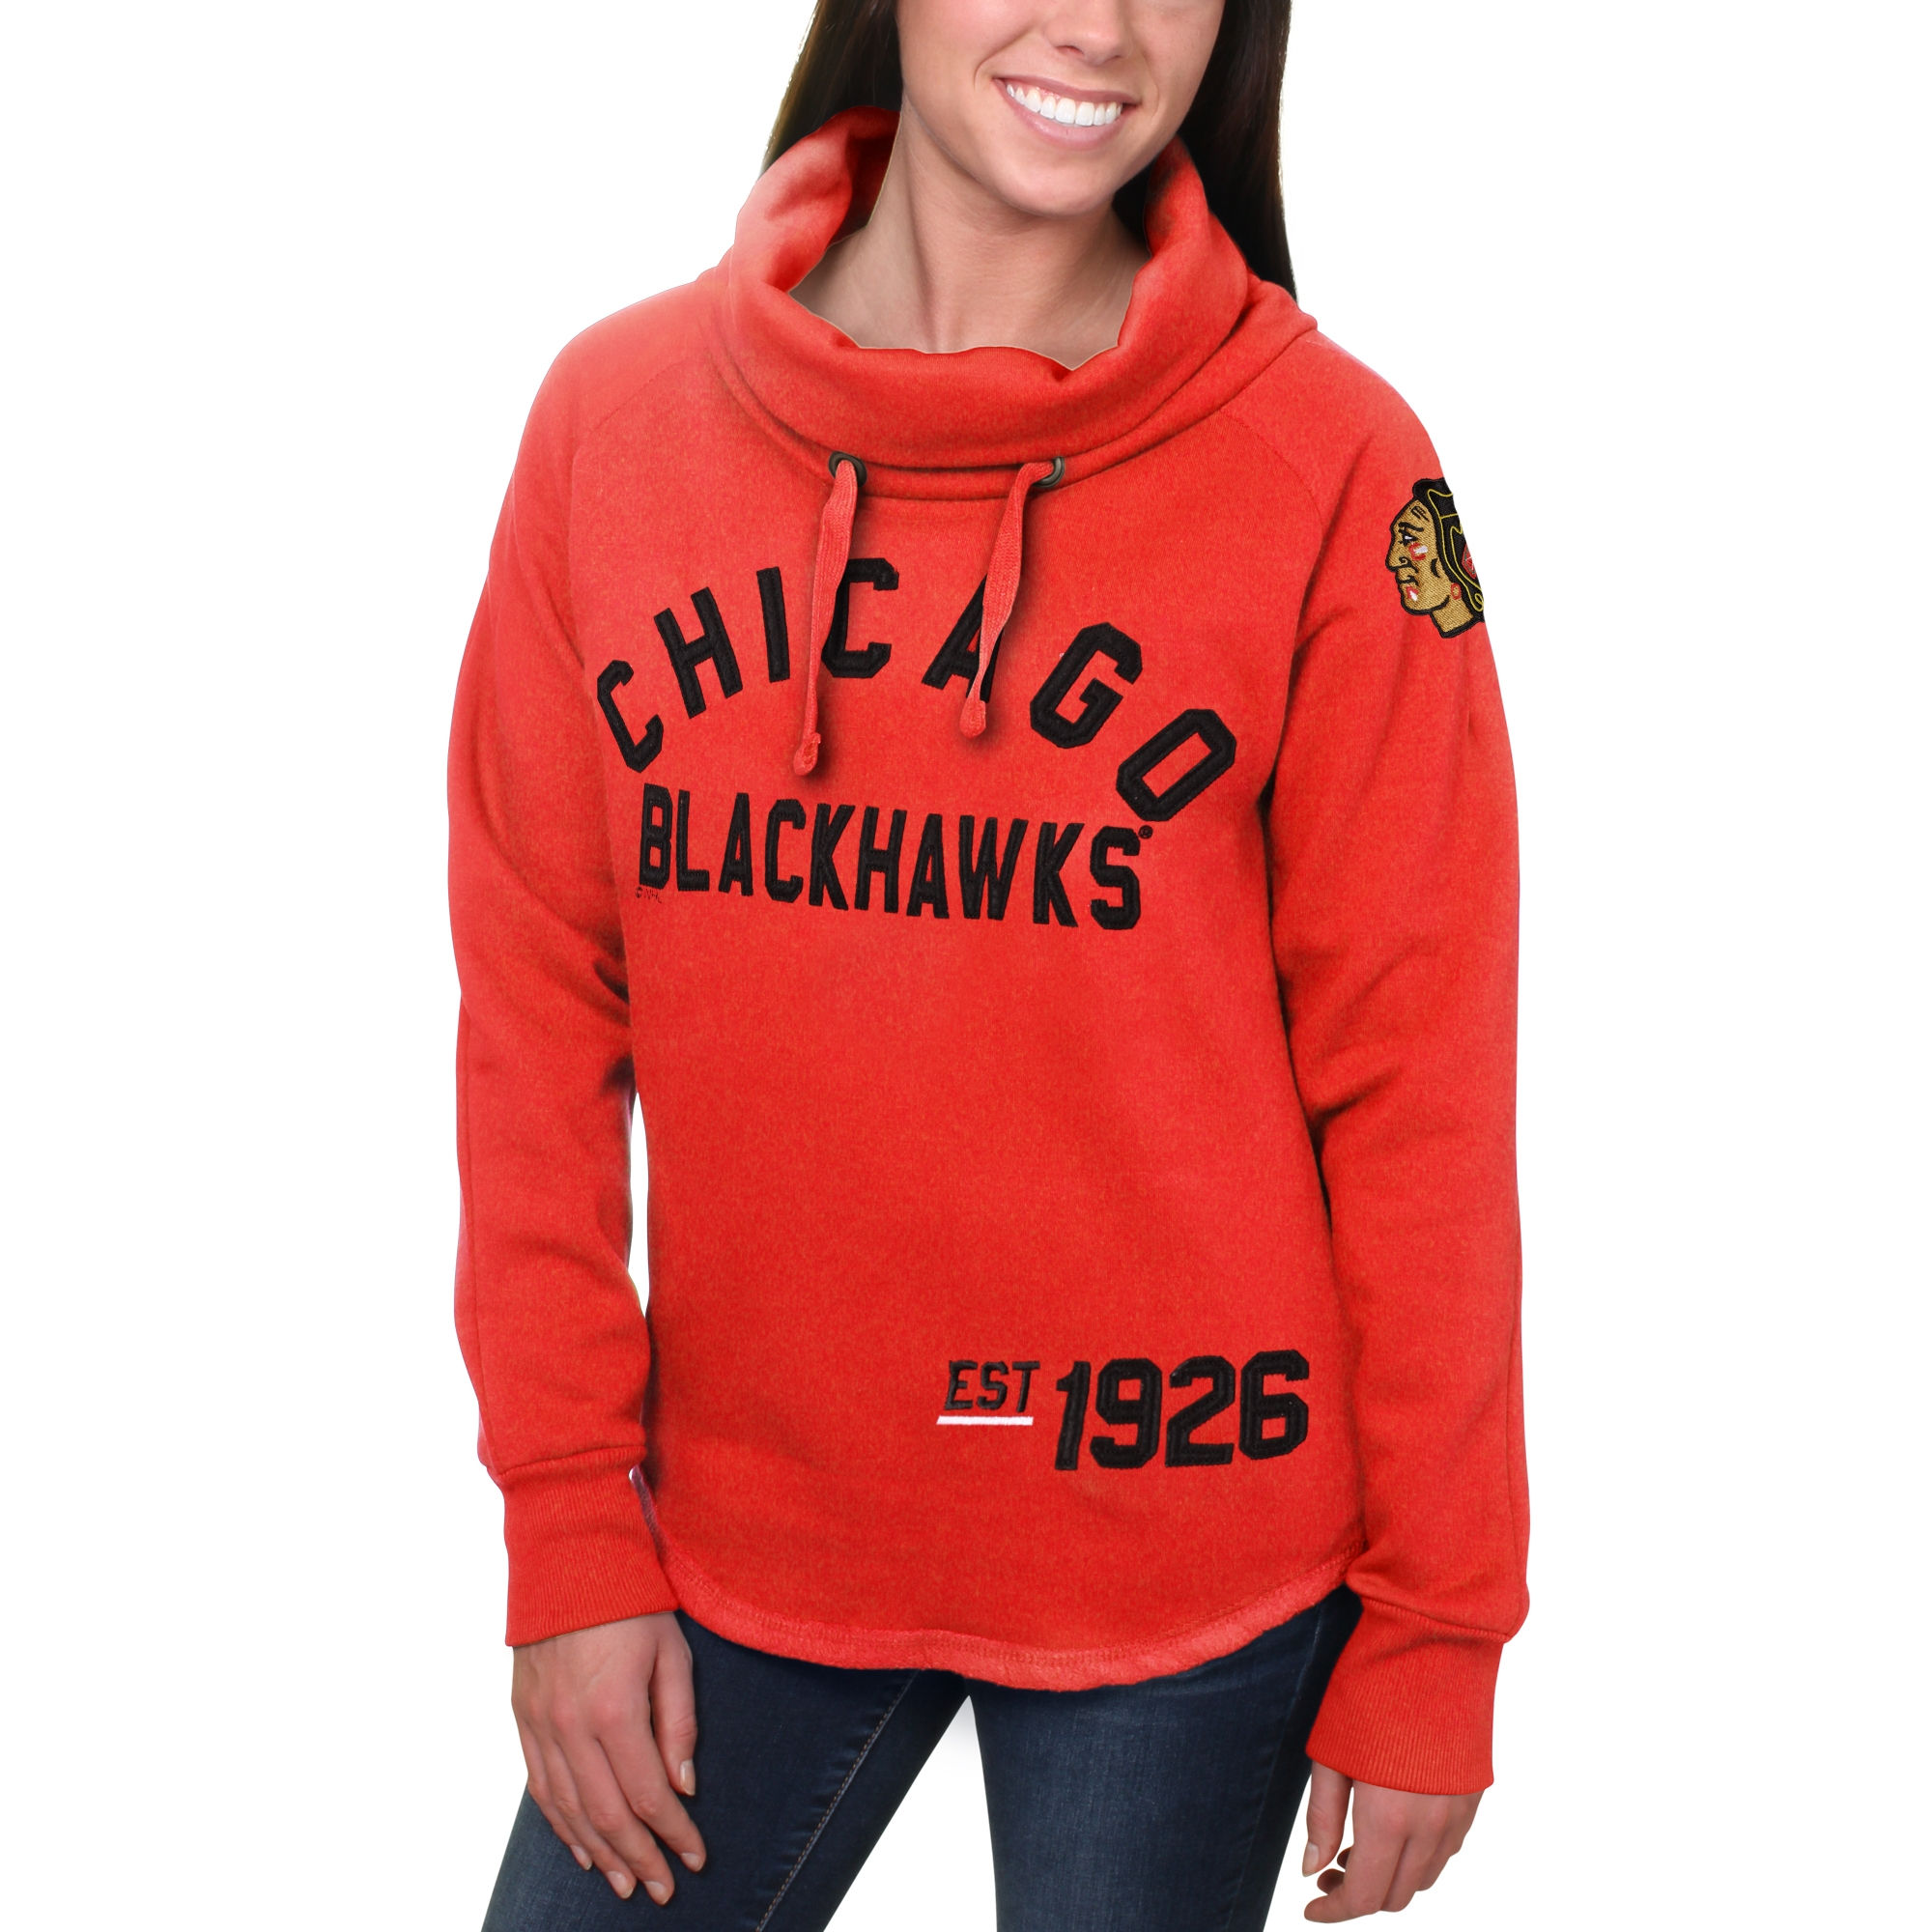 Blackahawks Red Women's Customized All Stitched Hooded Sweatshirt